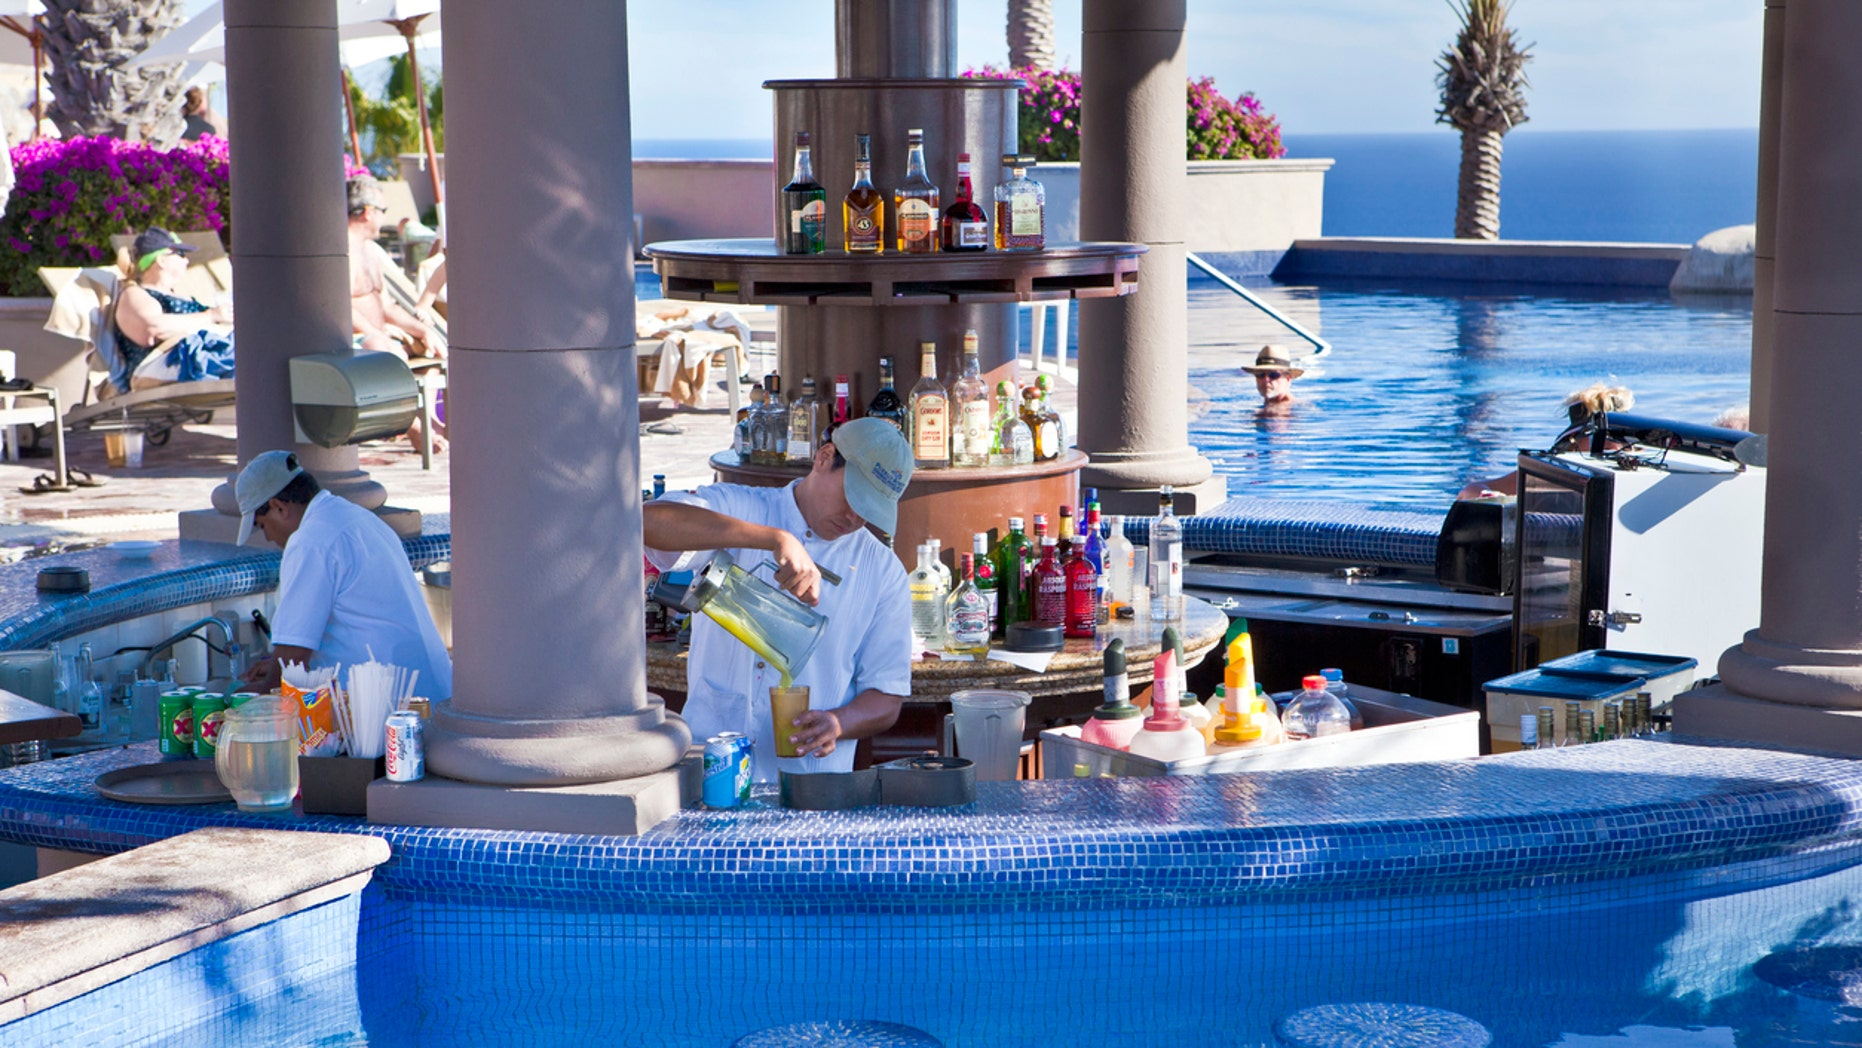 Bartenders work around a pool bar in Cabo San Lucas.